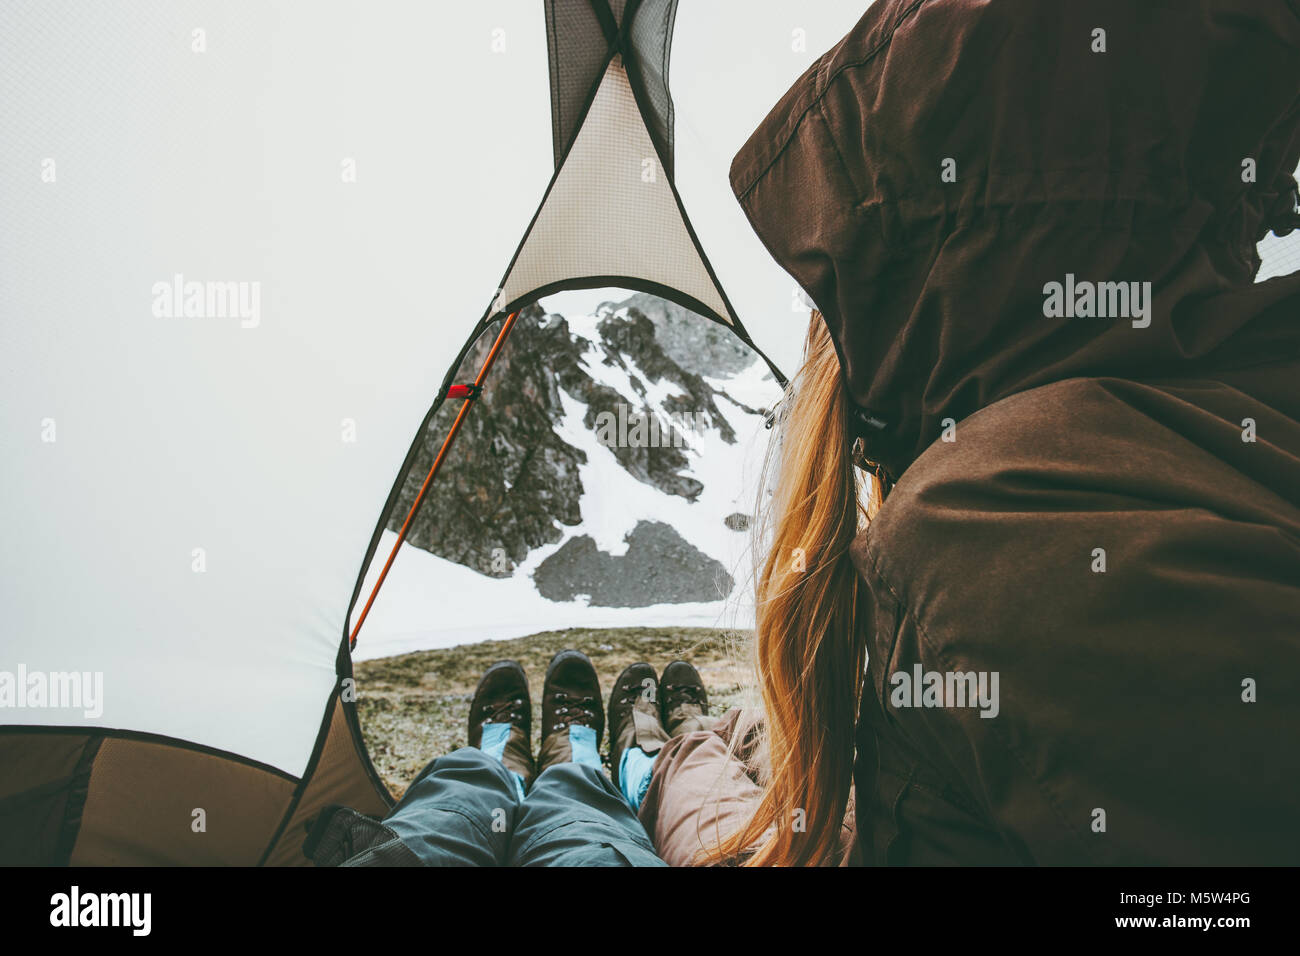 Travel couple in tent camping relaxing inside Lifestyle concept adventure vacations outdoor - Stock Image